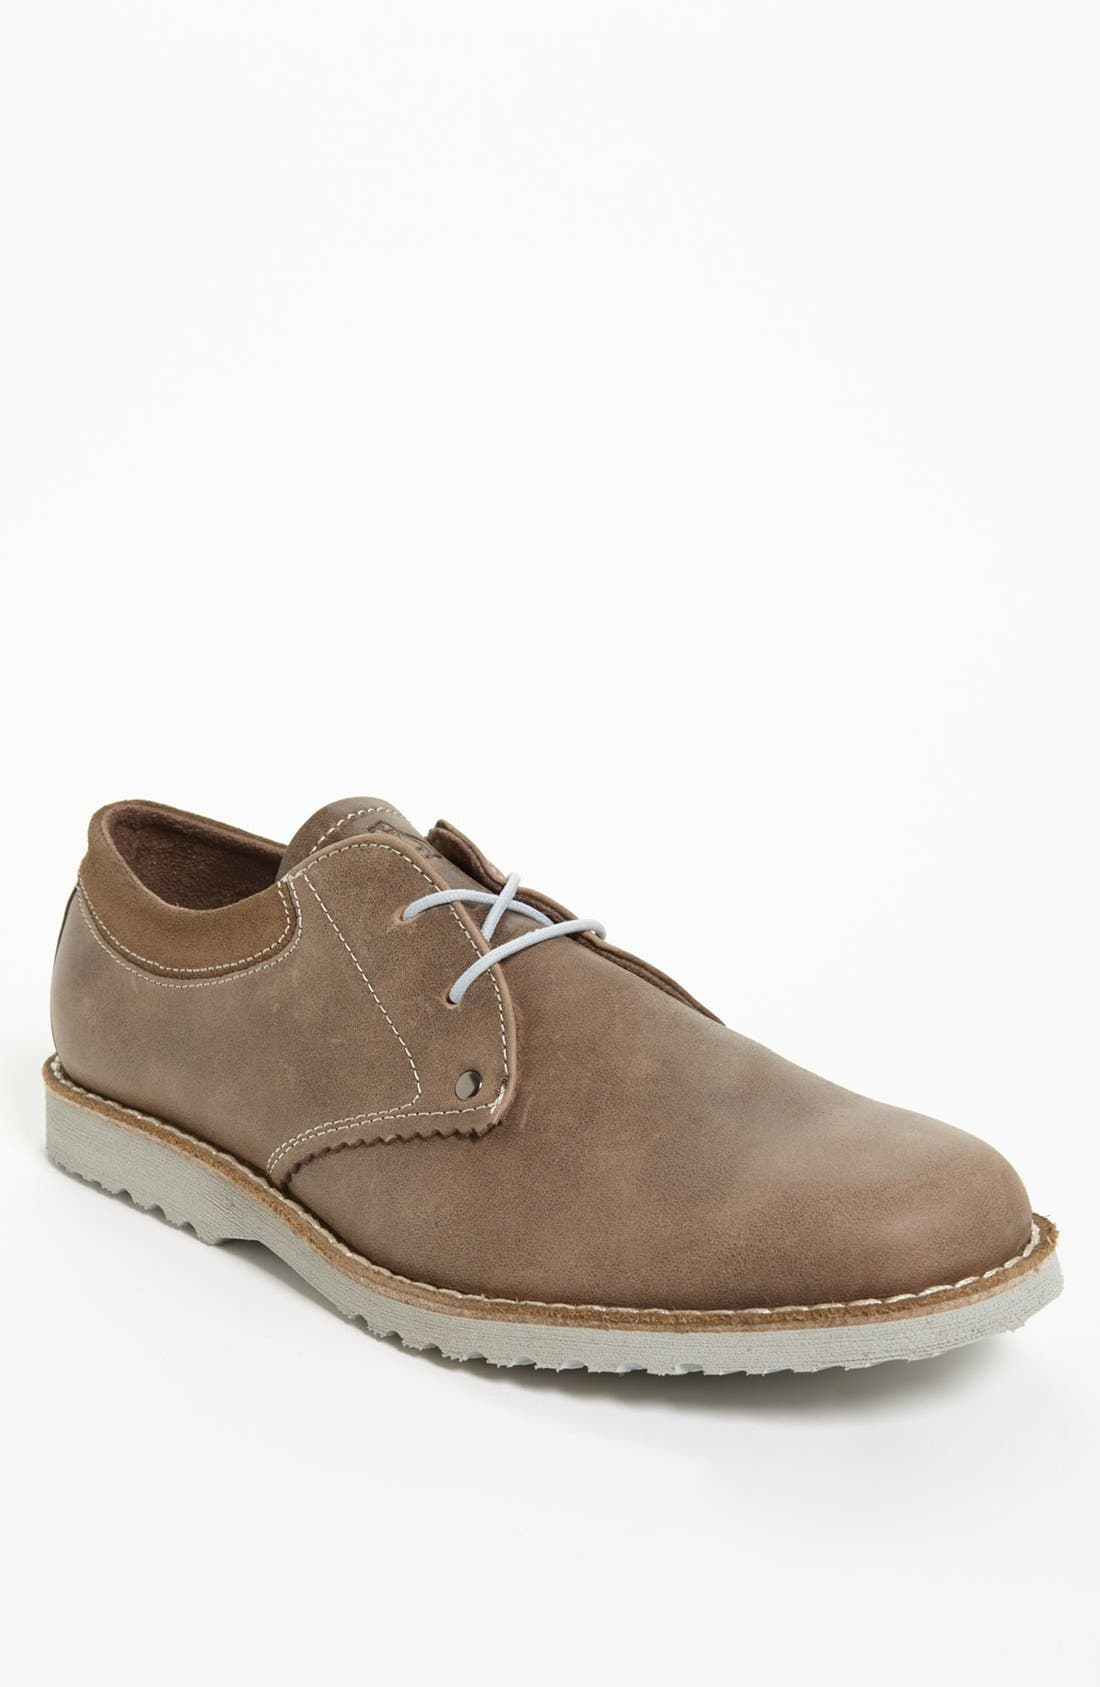 Main Image - Original Penguin 'Jennings' Buck Shoe